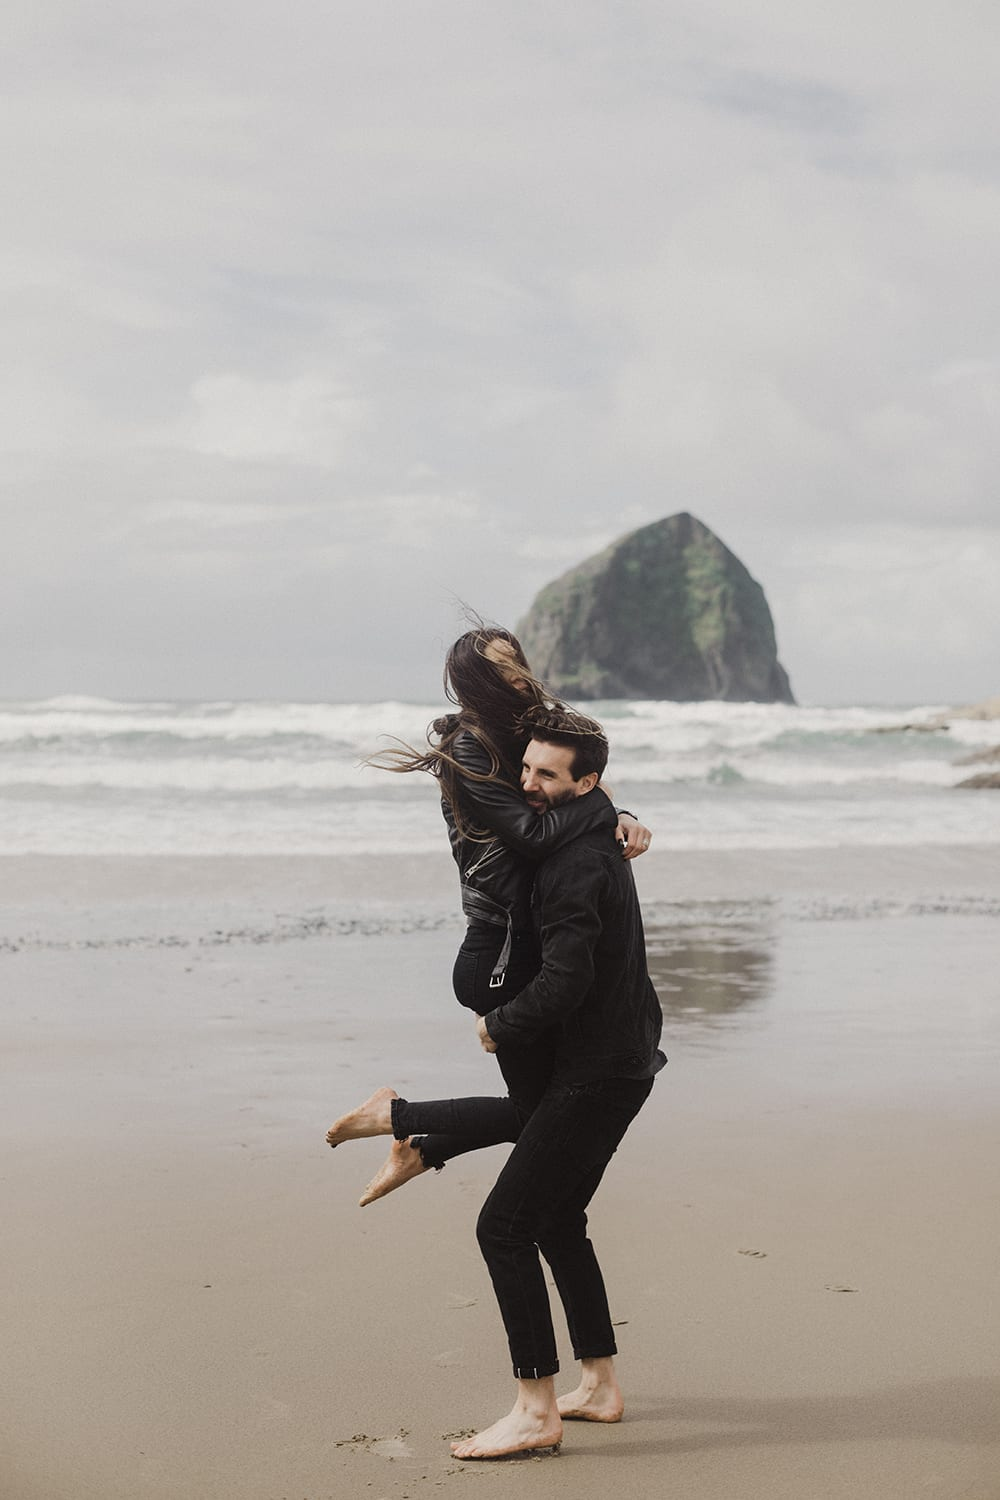 guy grabbing girl next to ocean with haystack rocks in backdrop